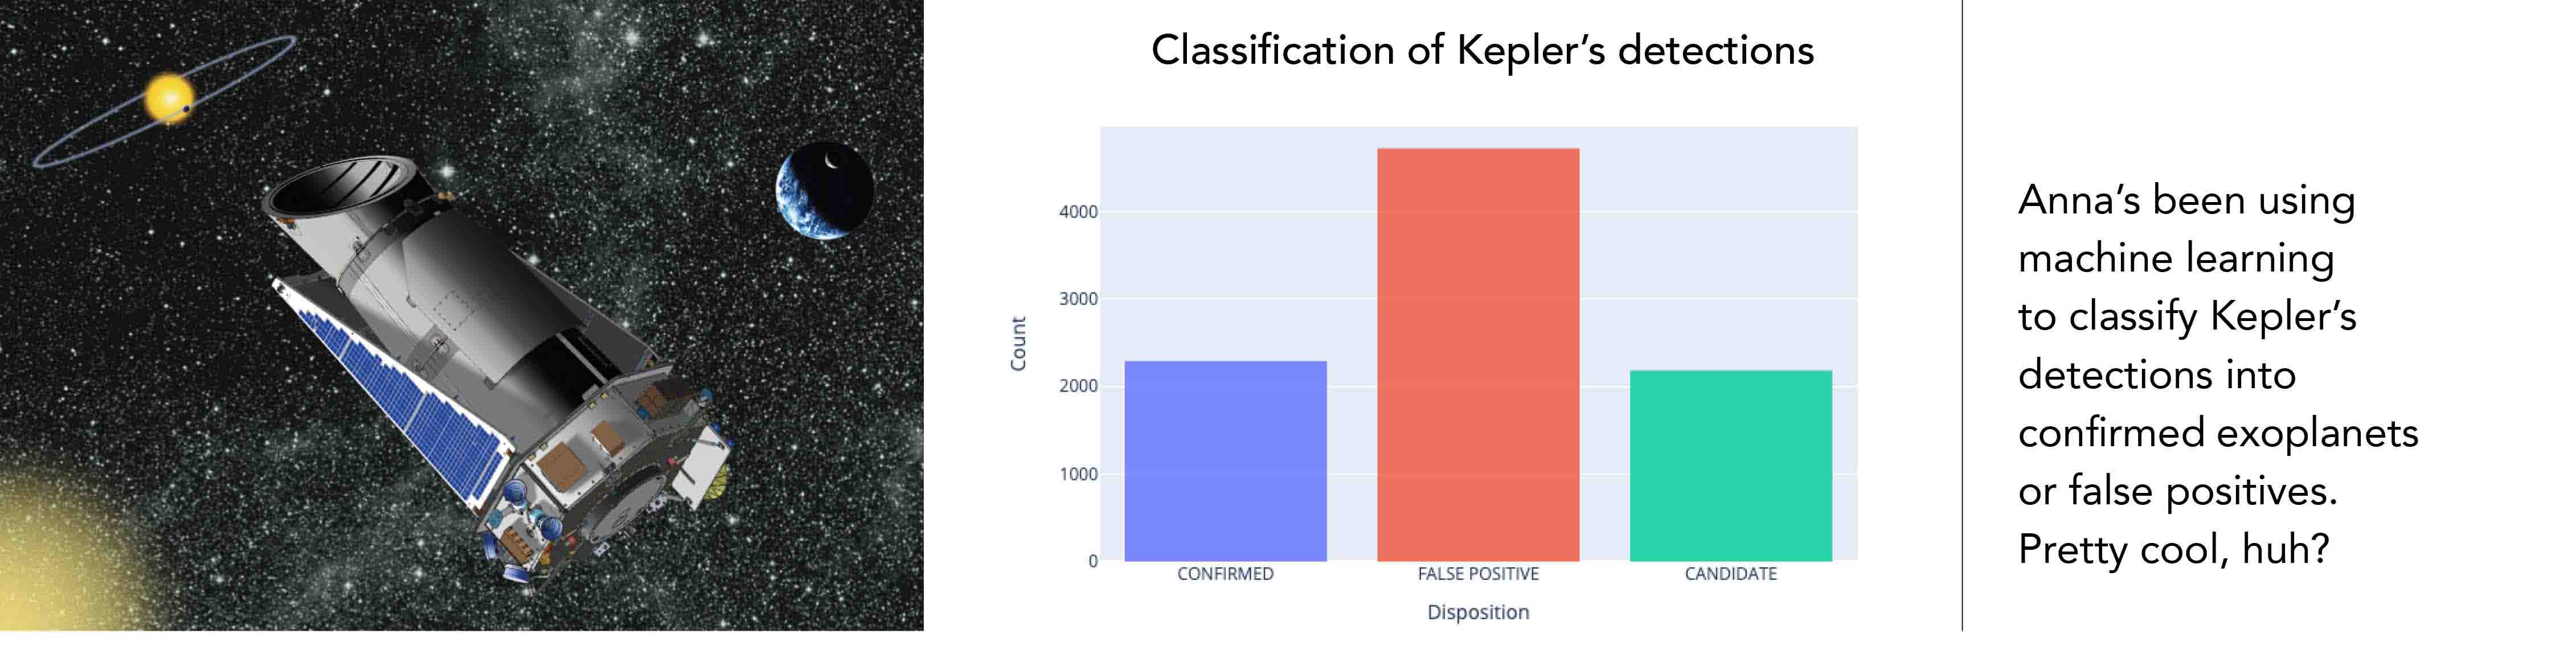 Anna's been using machine learning to classify Kepler's detections into confirmed exoplanets or false positives. Pretty cool, huh?...